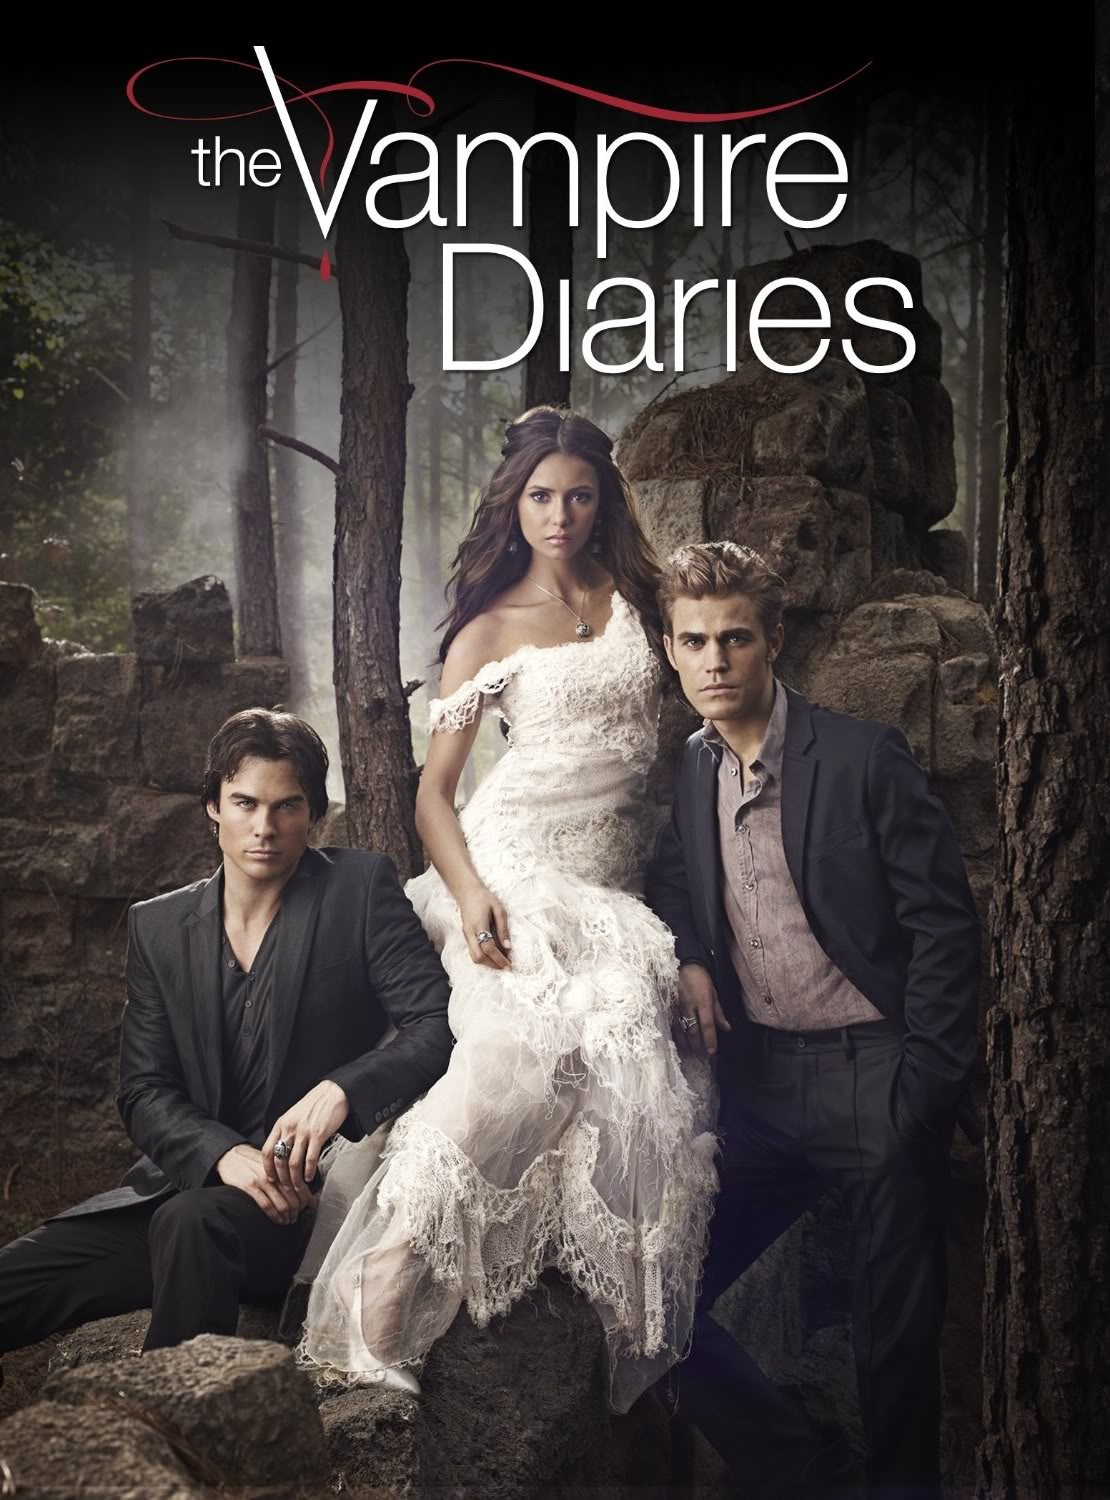 Assistir The Vampire Diaries Dublado 7x07 - Mommie Dearest Online